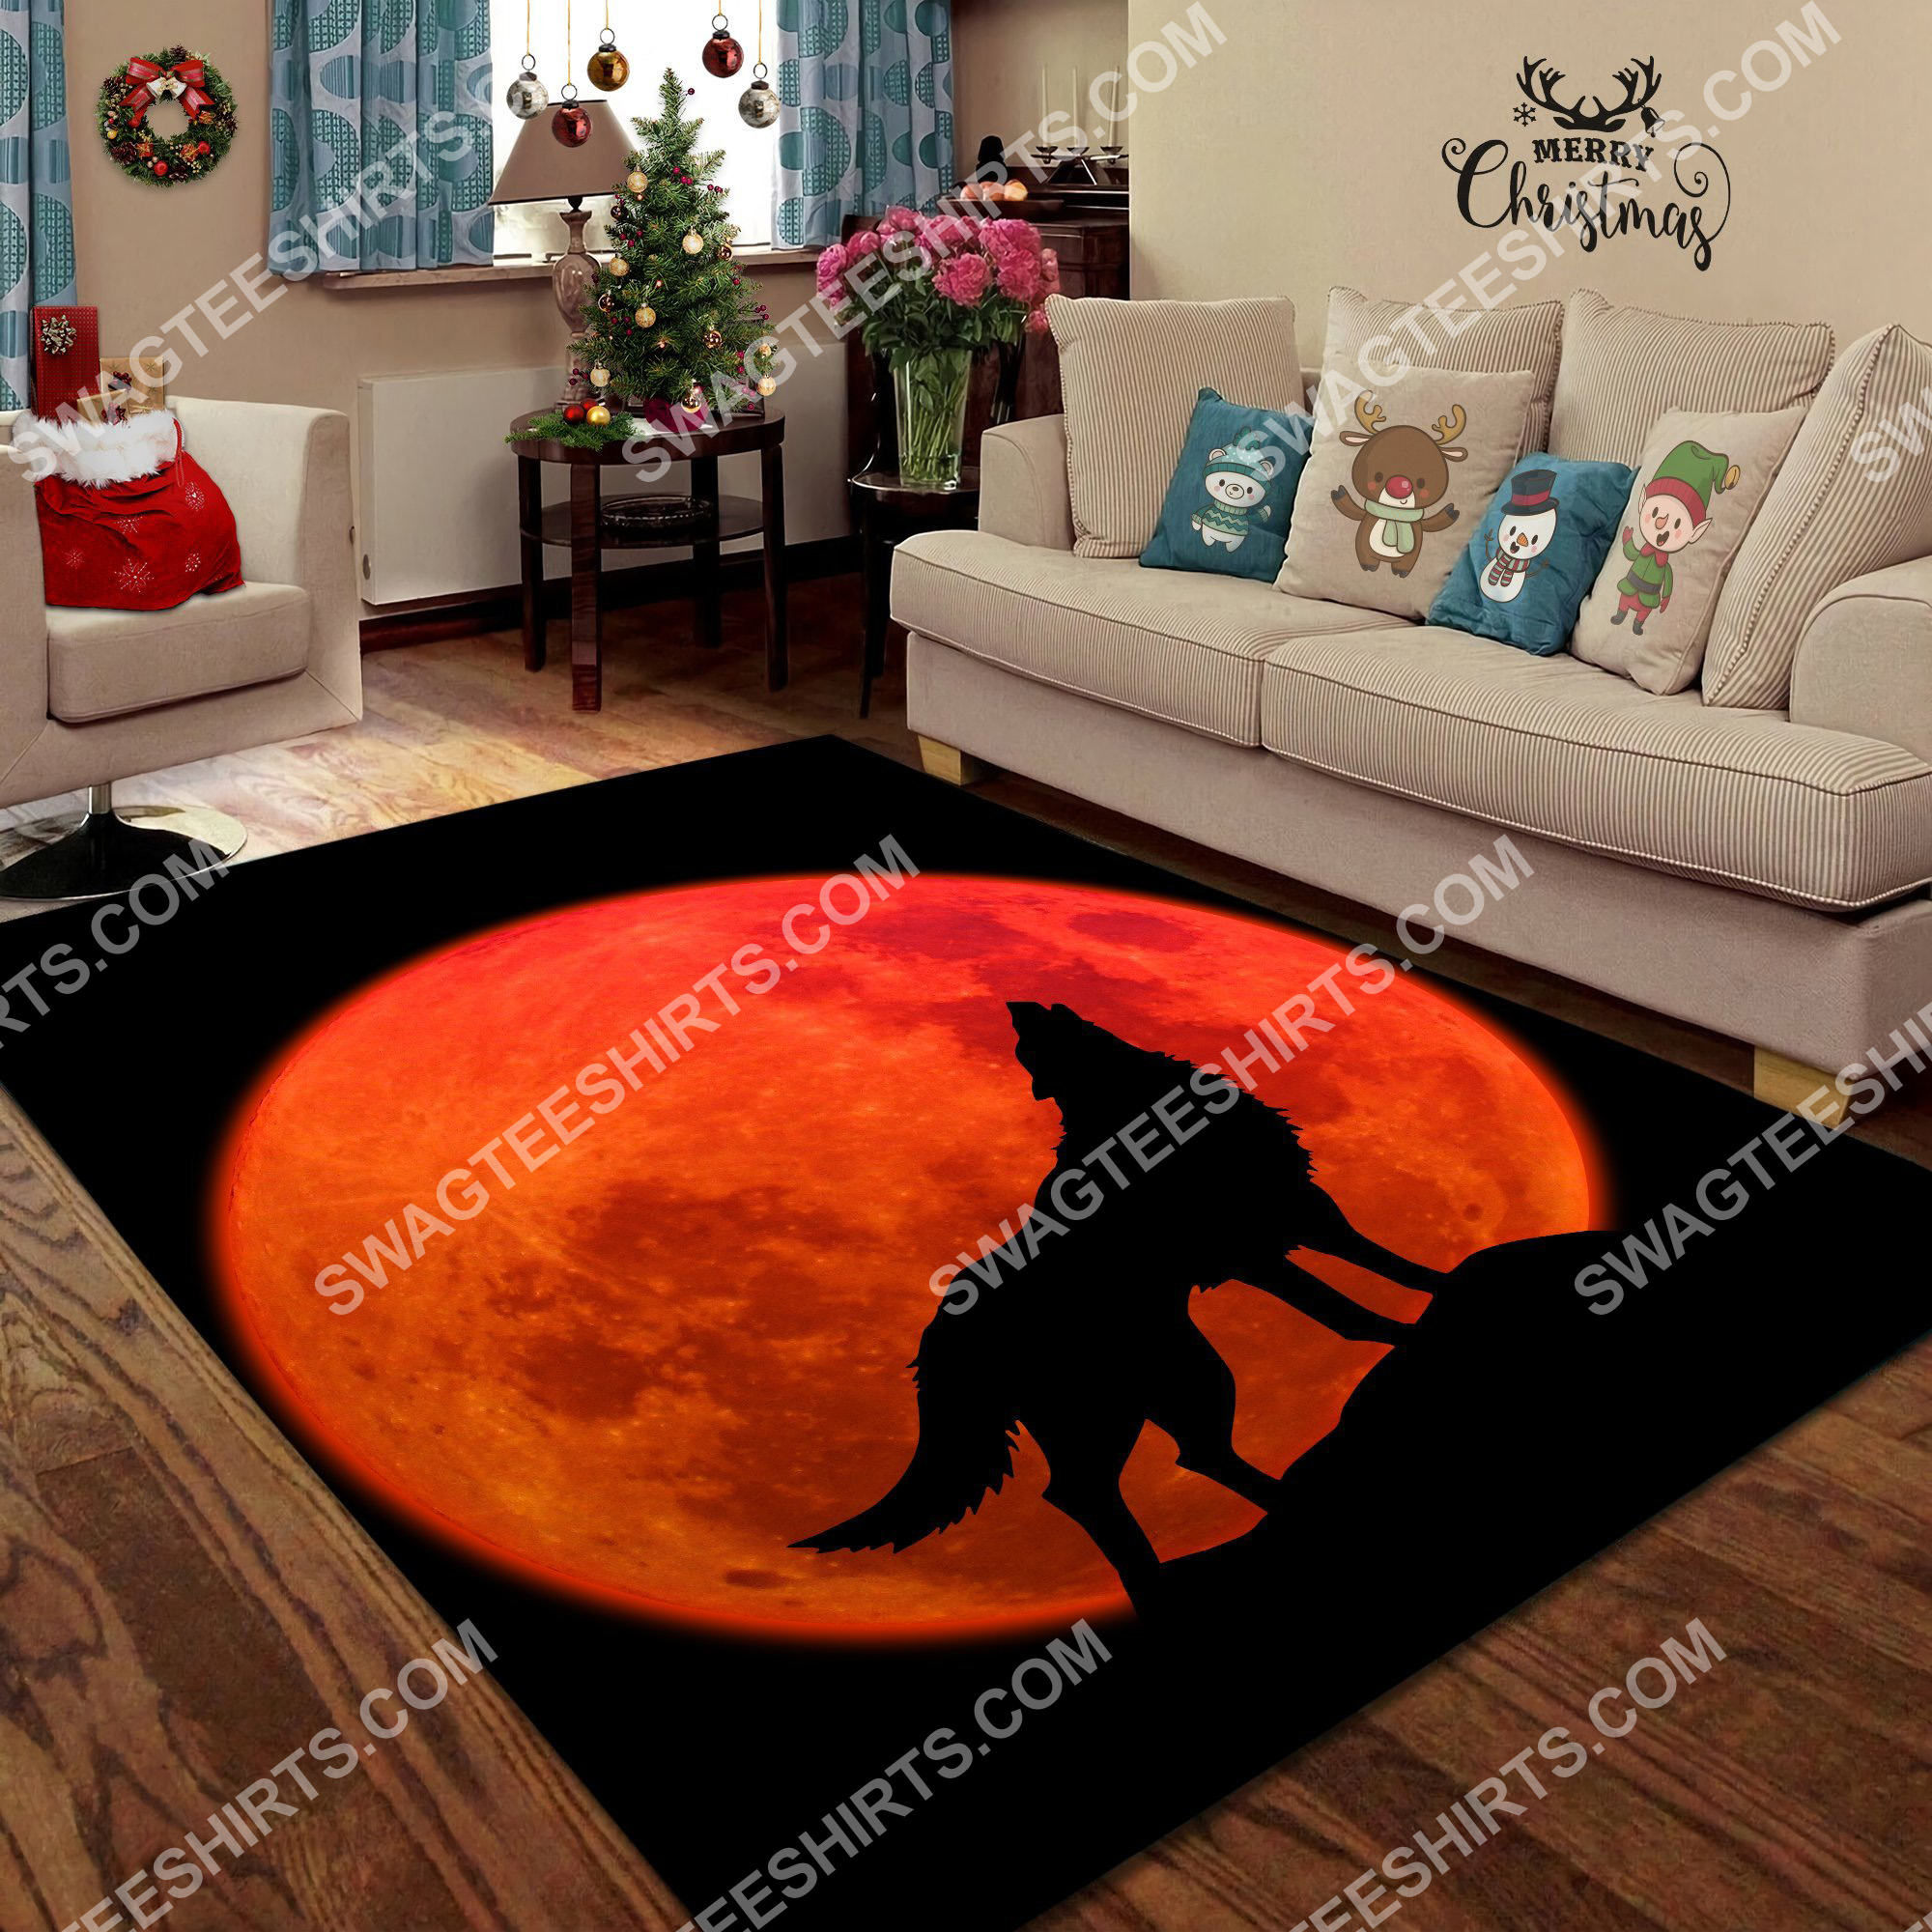 the wolf in red moon all over printed rug 4(1) - Copy